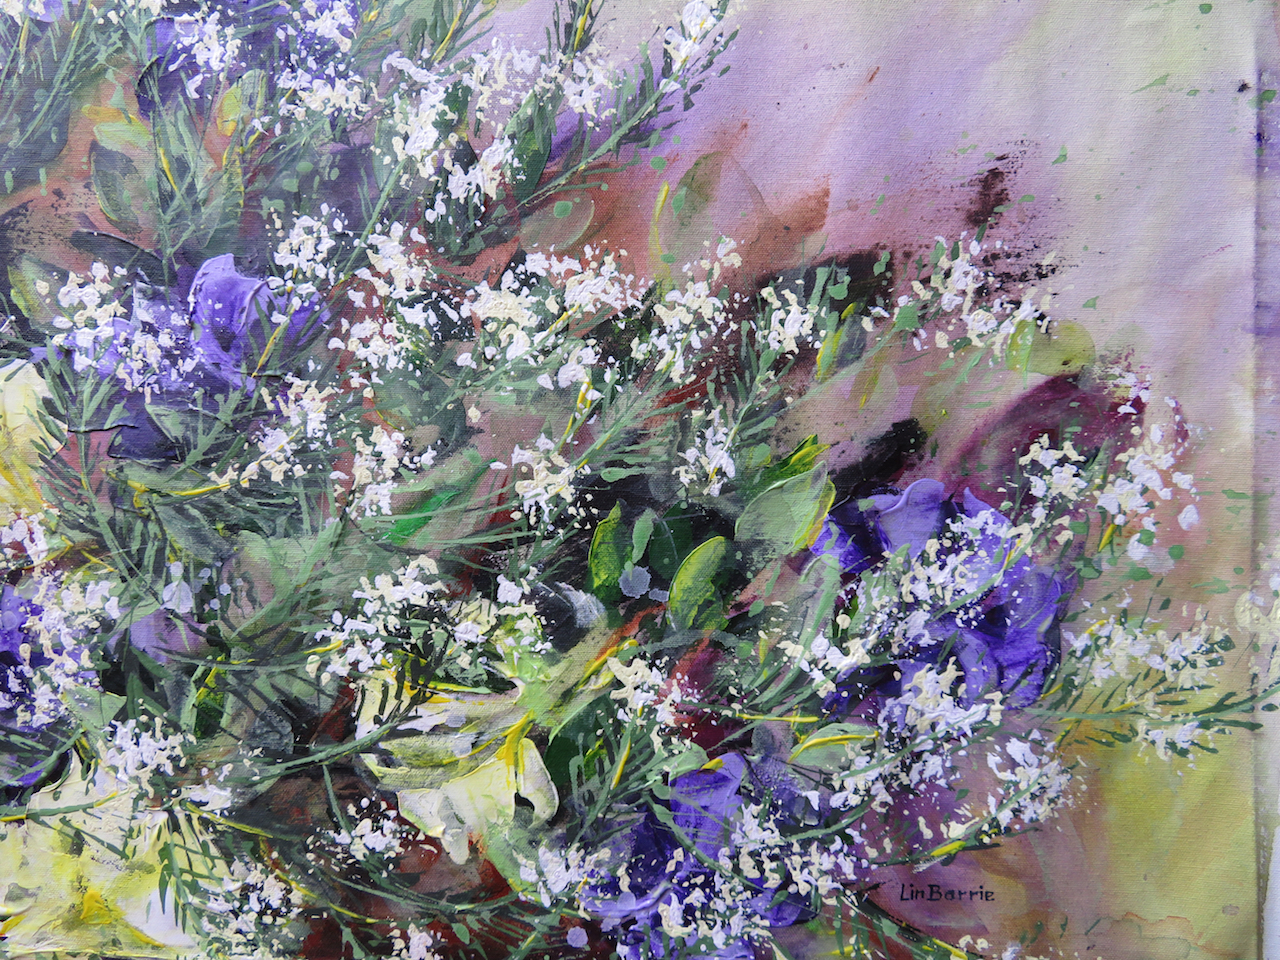 Alyssum and Petunias, acrylic on loose canvas, 61 x 91 cm lo res.jpg